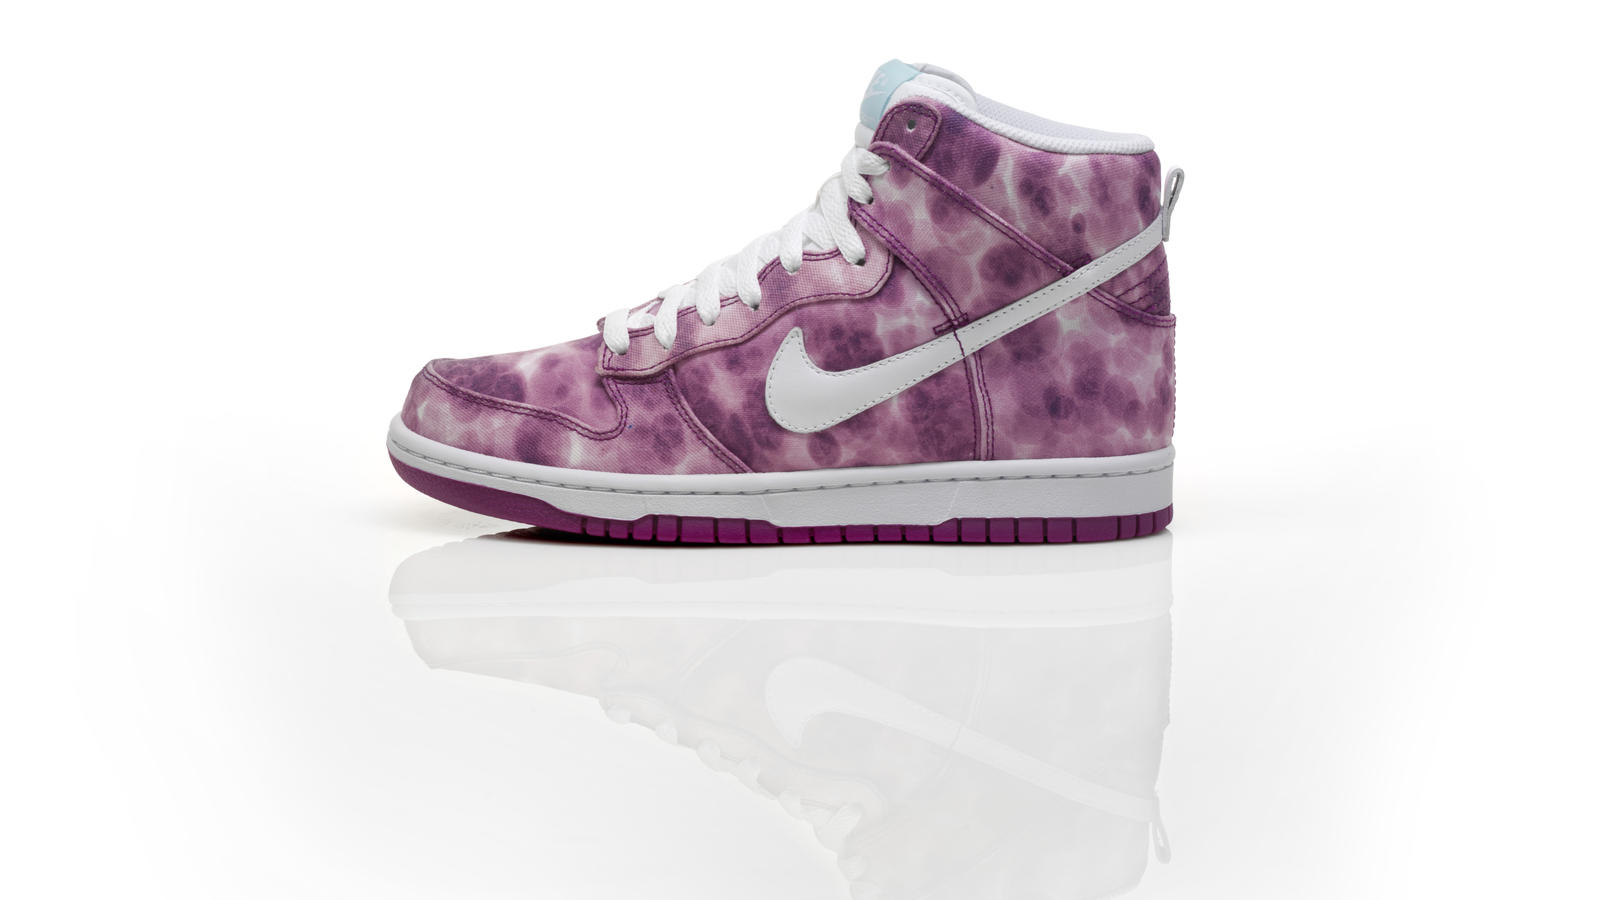 94fb345dc48d Fall Holiday 2009 Nike Sportswear collection - Nike News